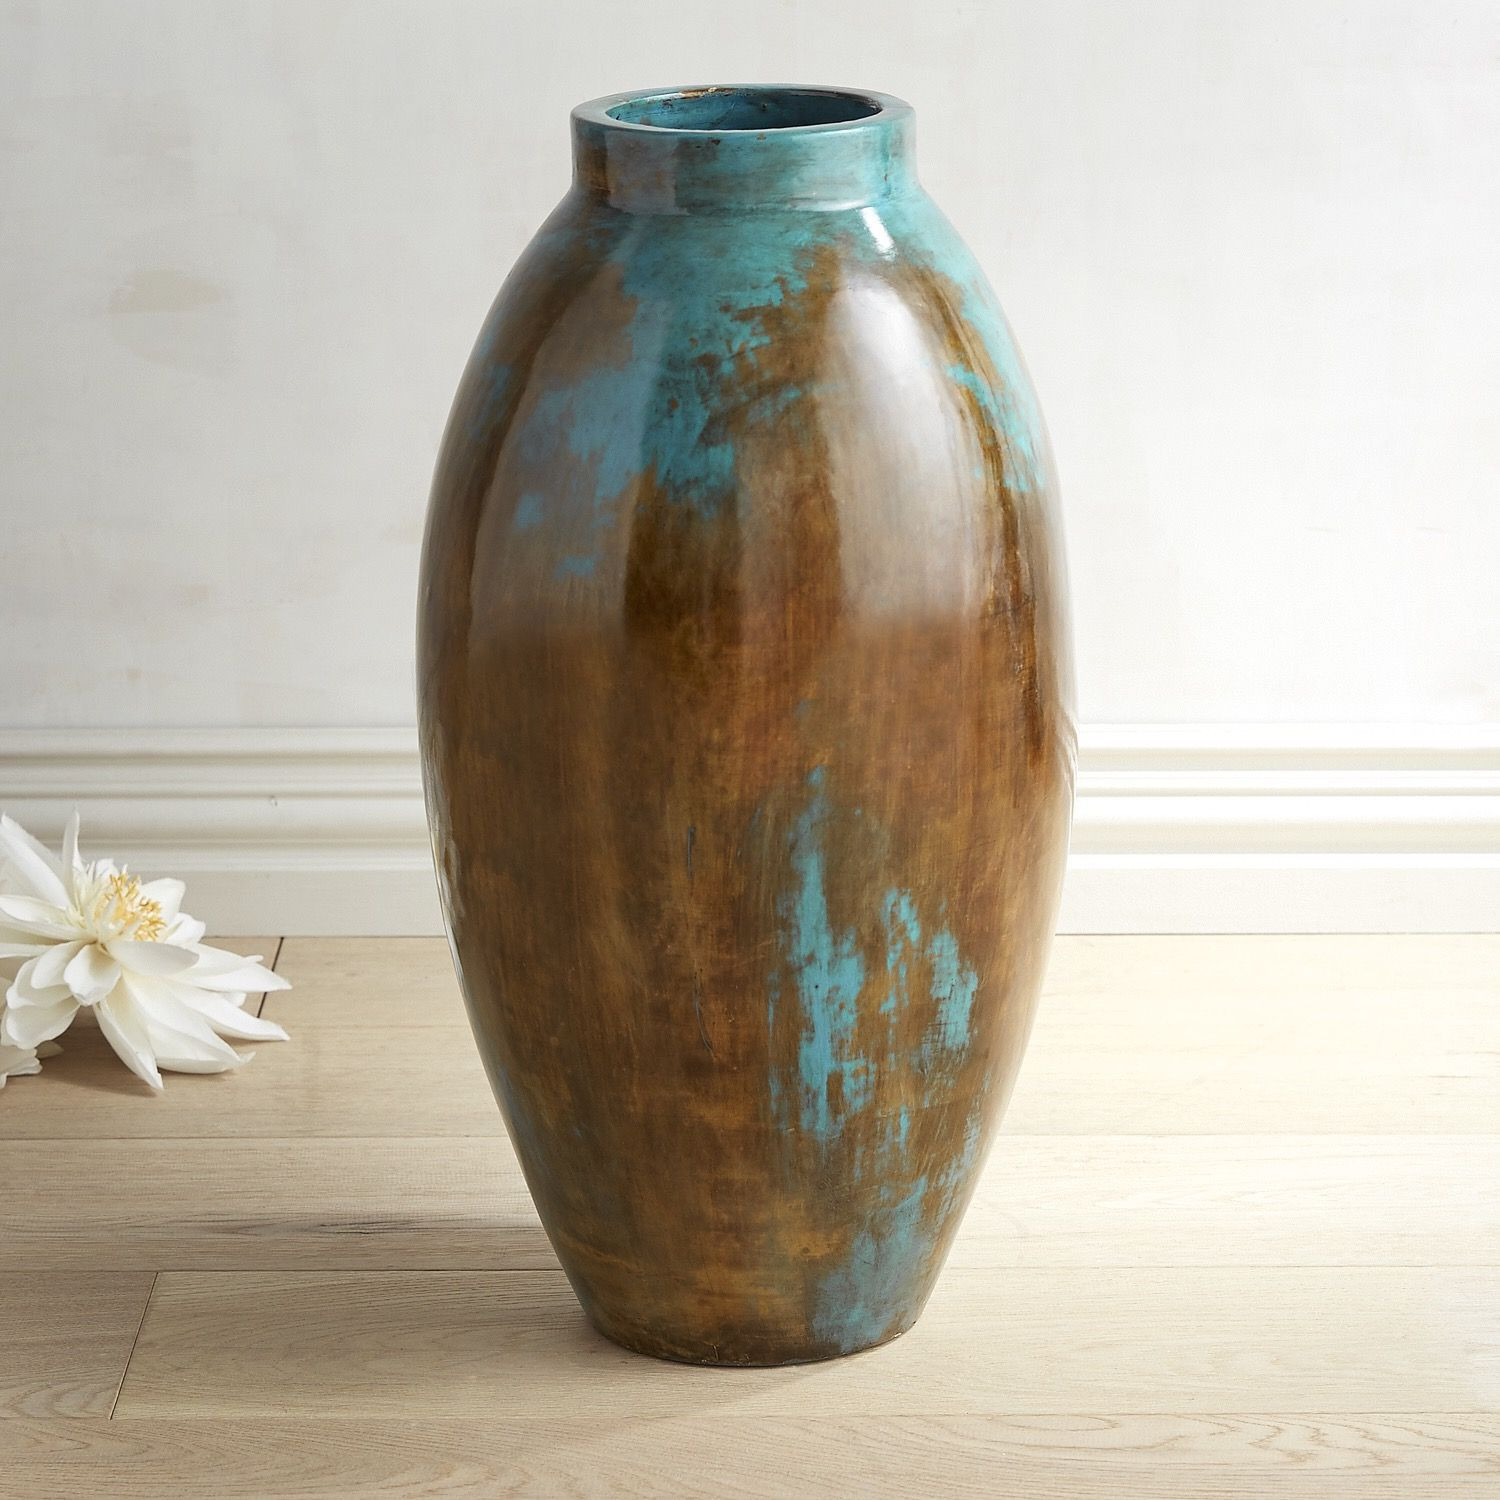 Rustic Floor Vase Of Blue Brown Oval Floor Vase Products Pinterest Vase Vases Pertaining to Blue Brown Oval Floor Vase